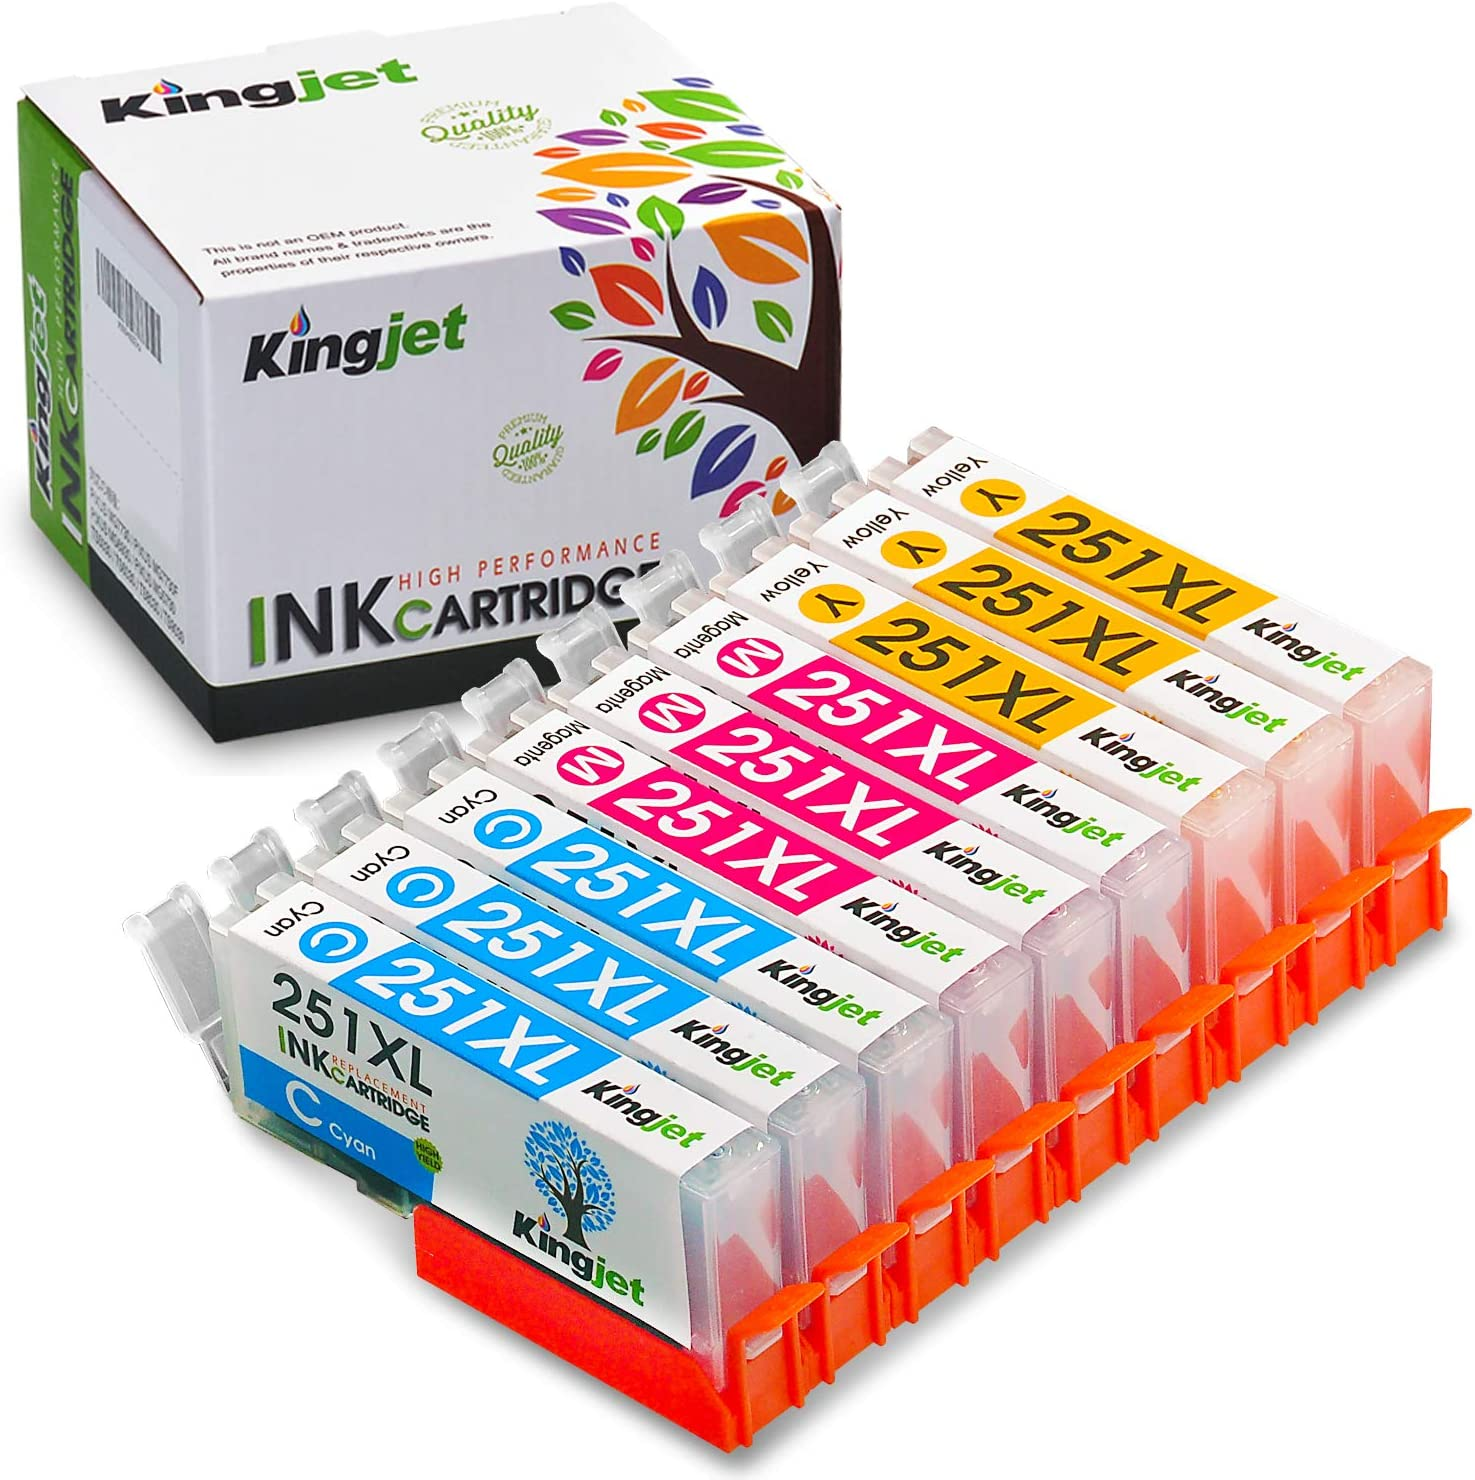 Kingjet Compatible Ink Cartridge Replacement for CLI-251XL Work with PIXMA MX922 IP8720 MG5420 MG5422 MG5520 MG5522 MG5622 MG6620 MG7520 MX6320 IX6820 IP7220 Printers, 9Pack(3C 3M 3Y)